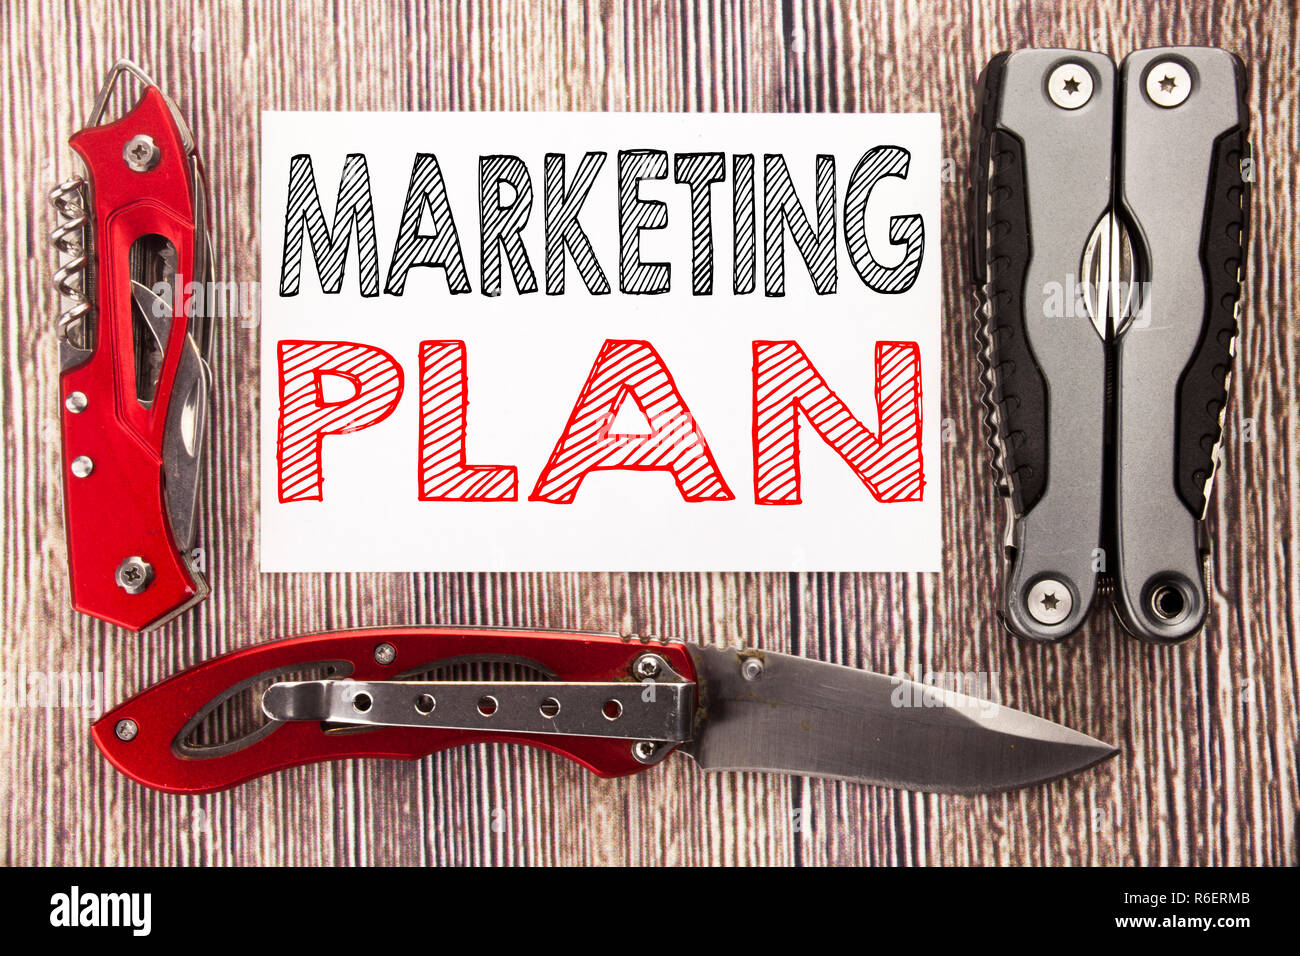 Conceptual hand writing text caption inspiration showing Marketing Plan. Business concept for Planning Successful Strategy Written on sticky note wooden background with pocket knife - Stock Image